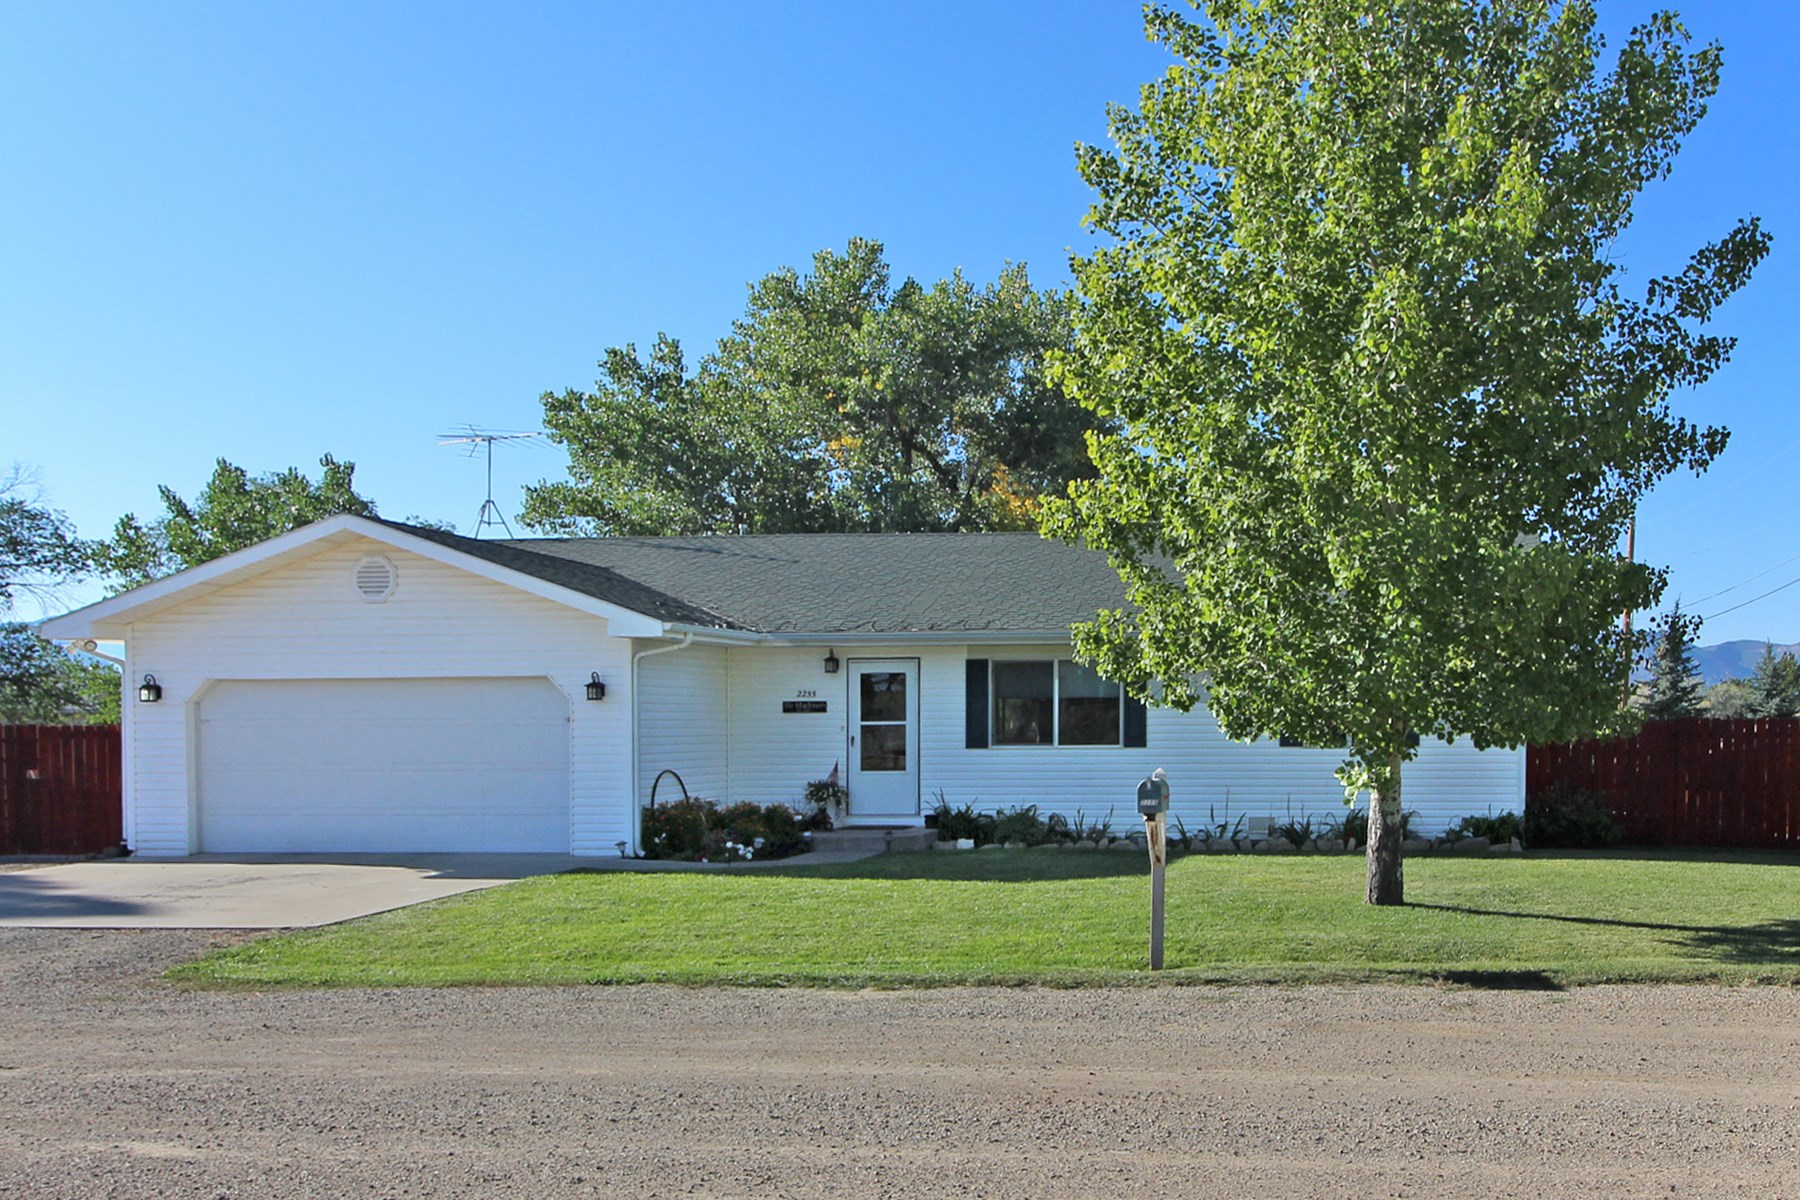 Single Family Ranch on Private Road For Sale in Cortez, CO!